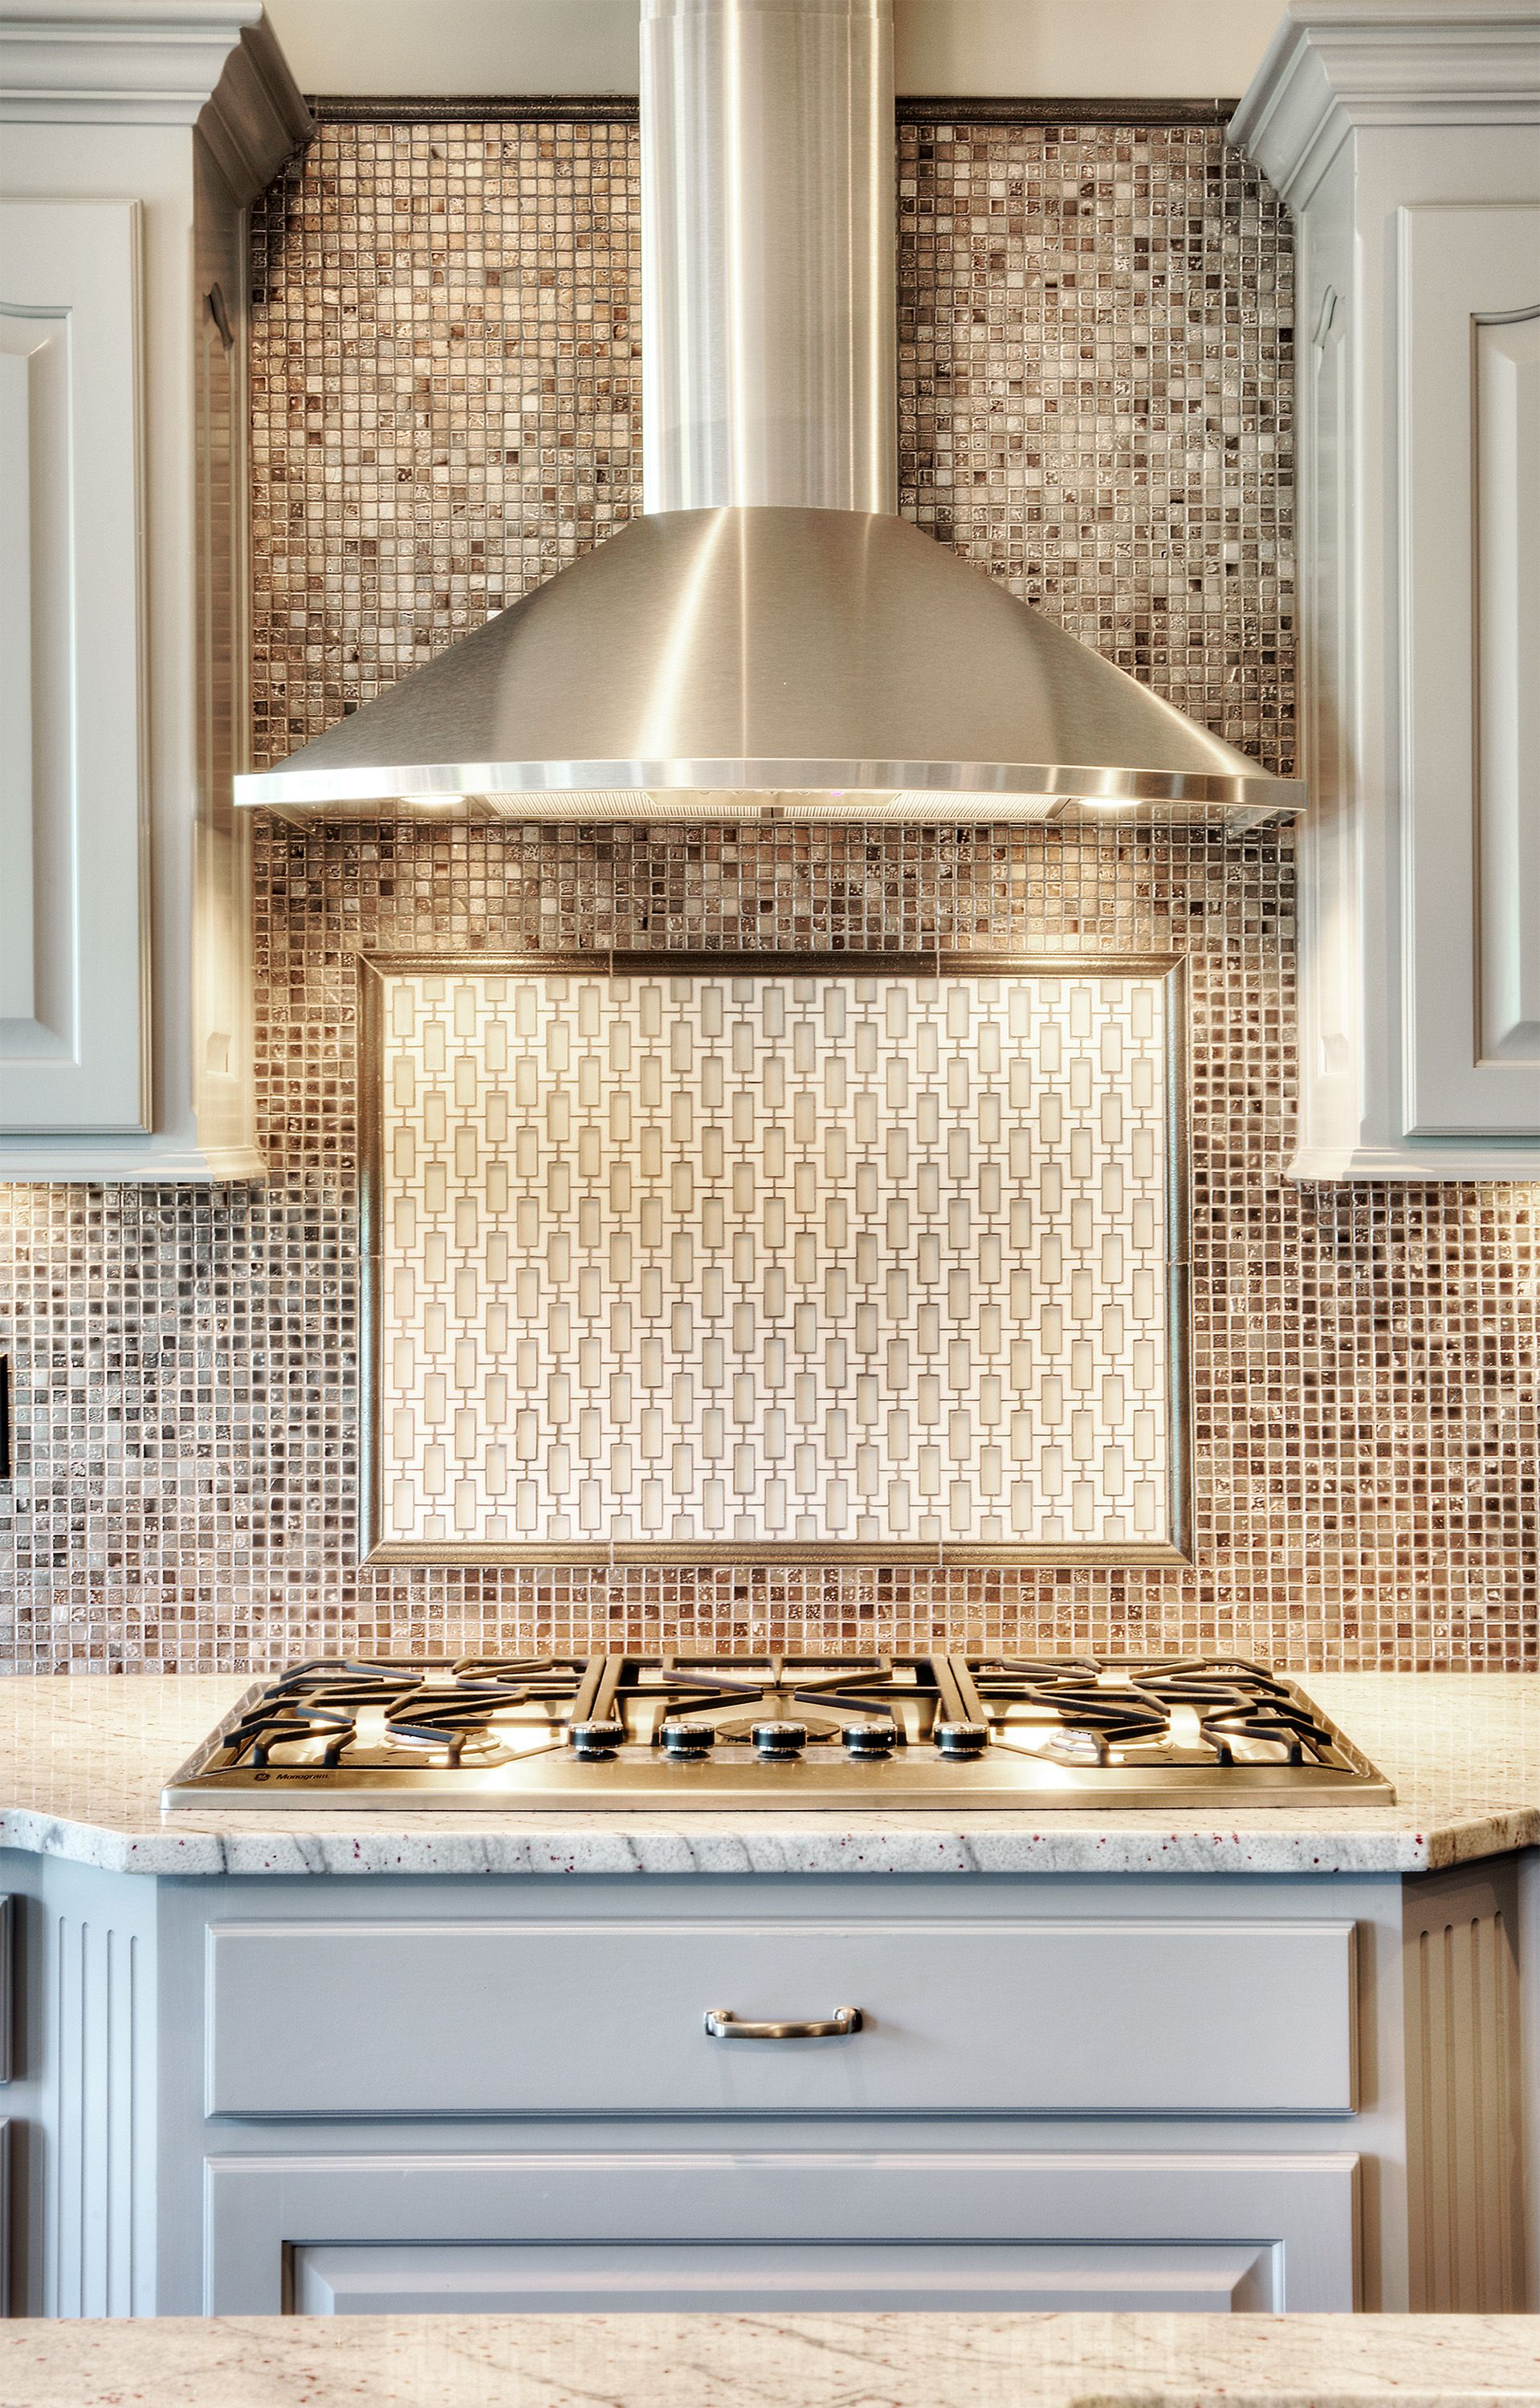 Chrome Stainless Steel Vent Hood Painted Kitchen Cabinets Mosaic